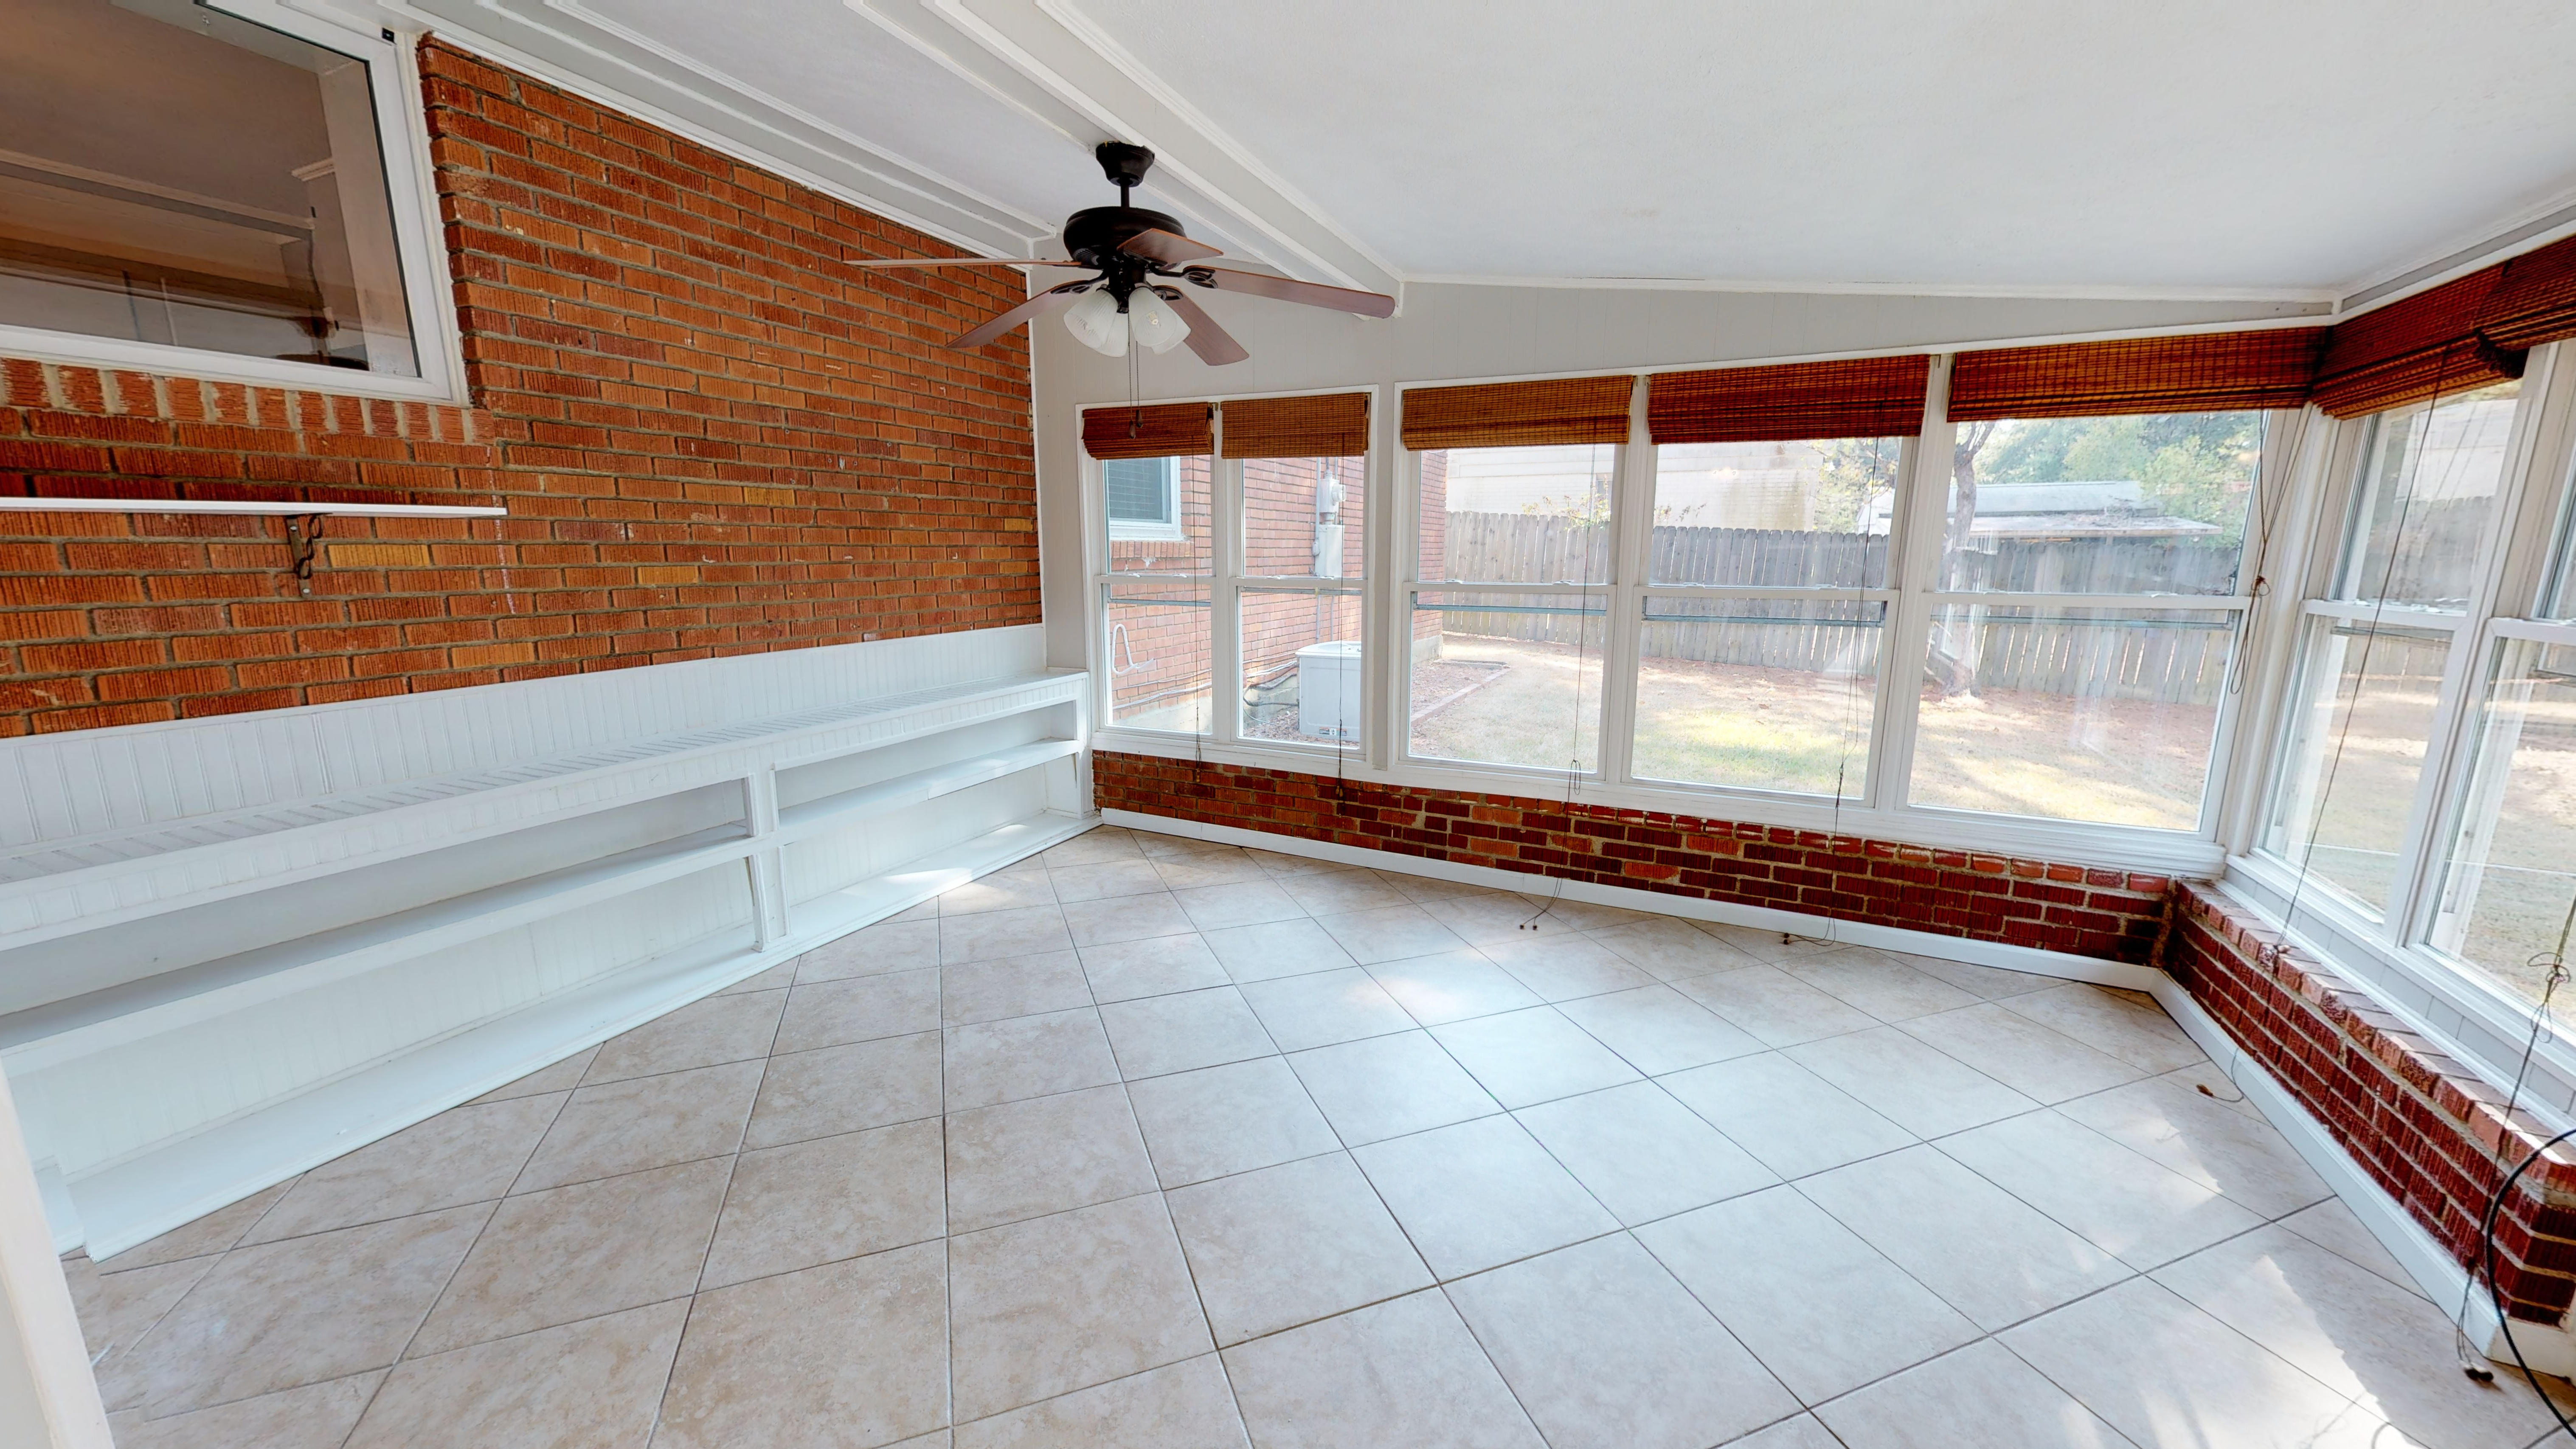 FOR RENT IN MONTGOMERY! 3 BED 2 BATH AT 755 HILLMAN STREET